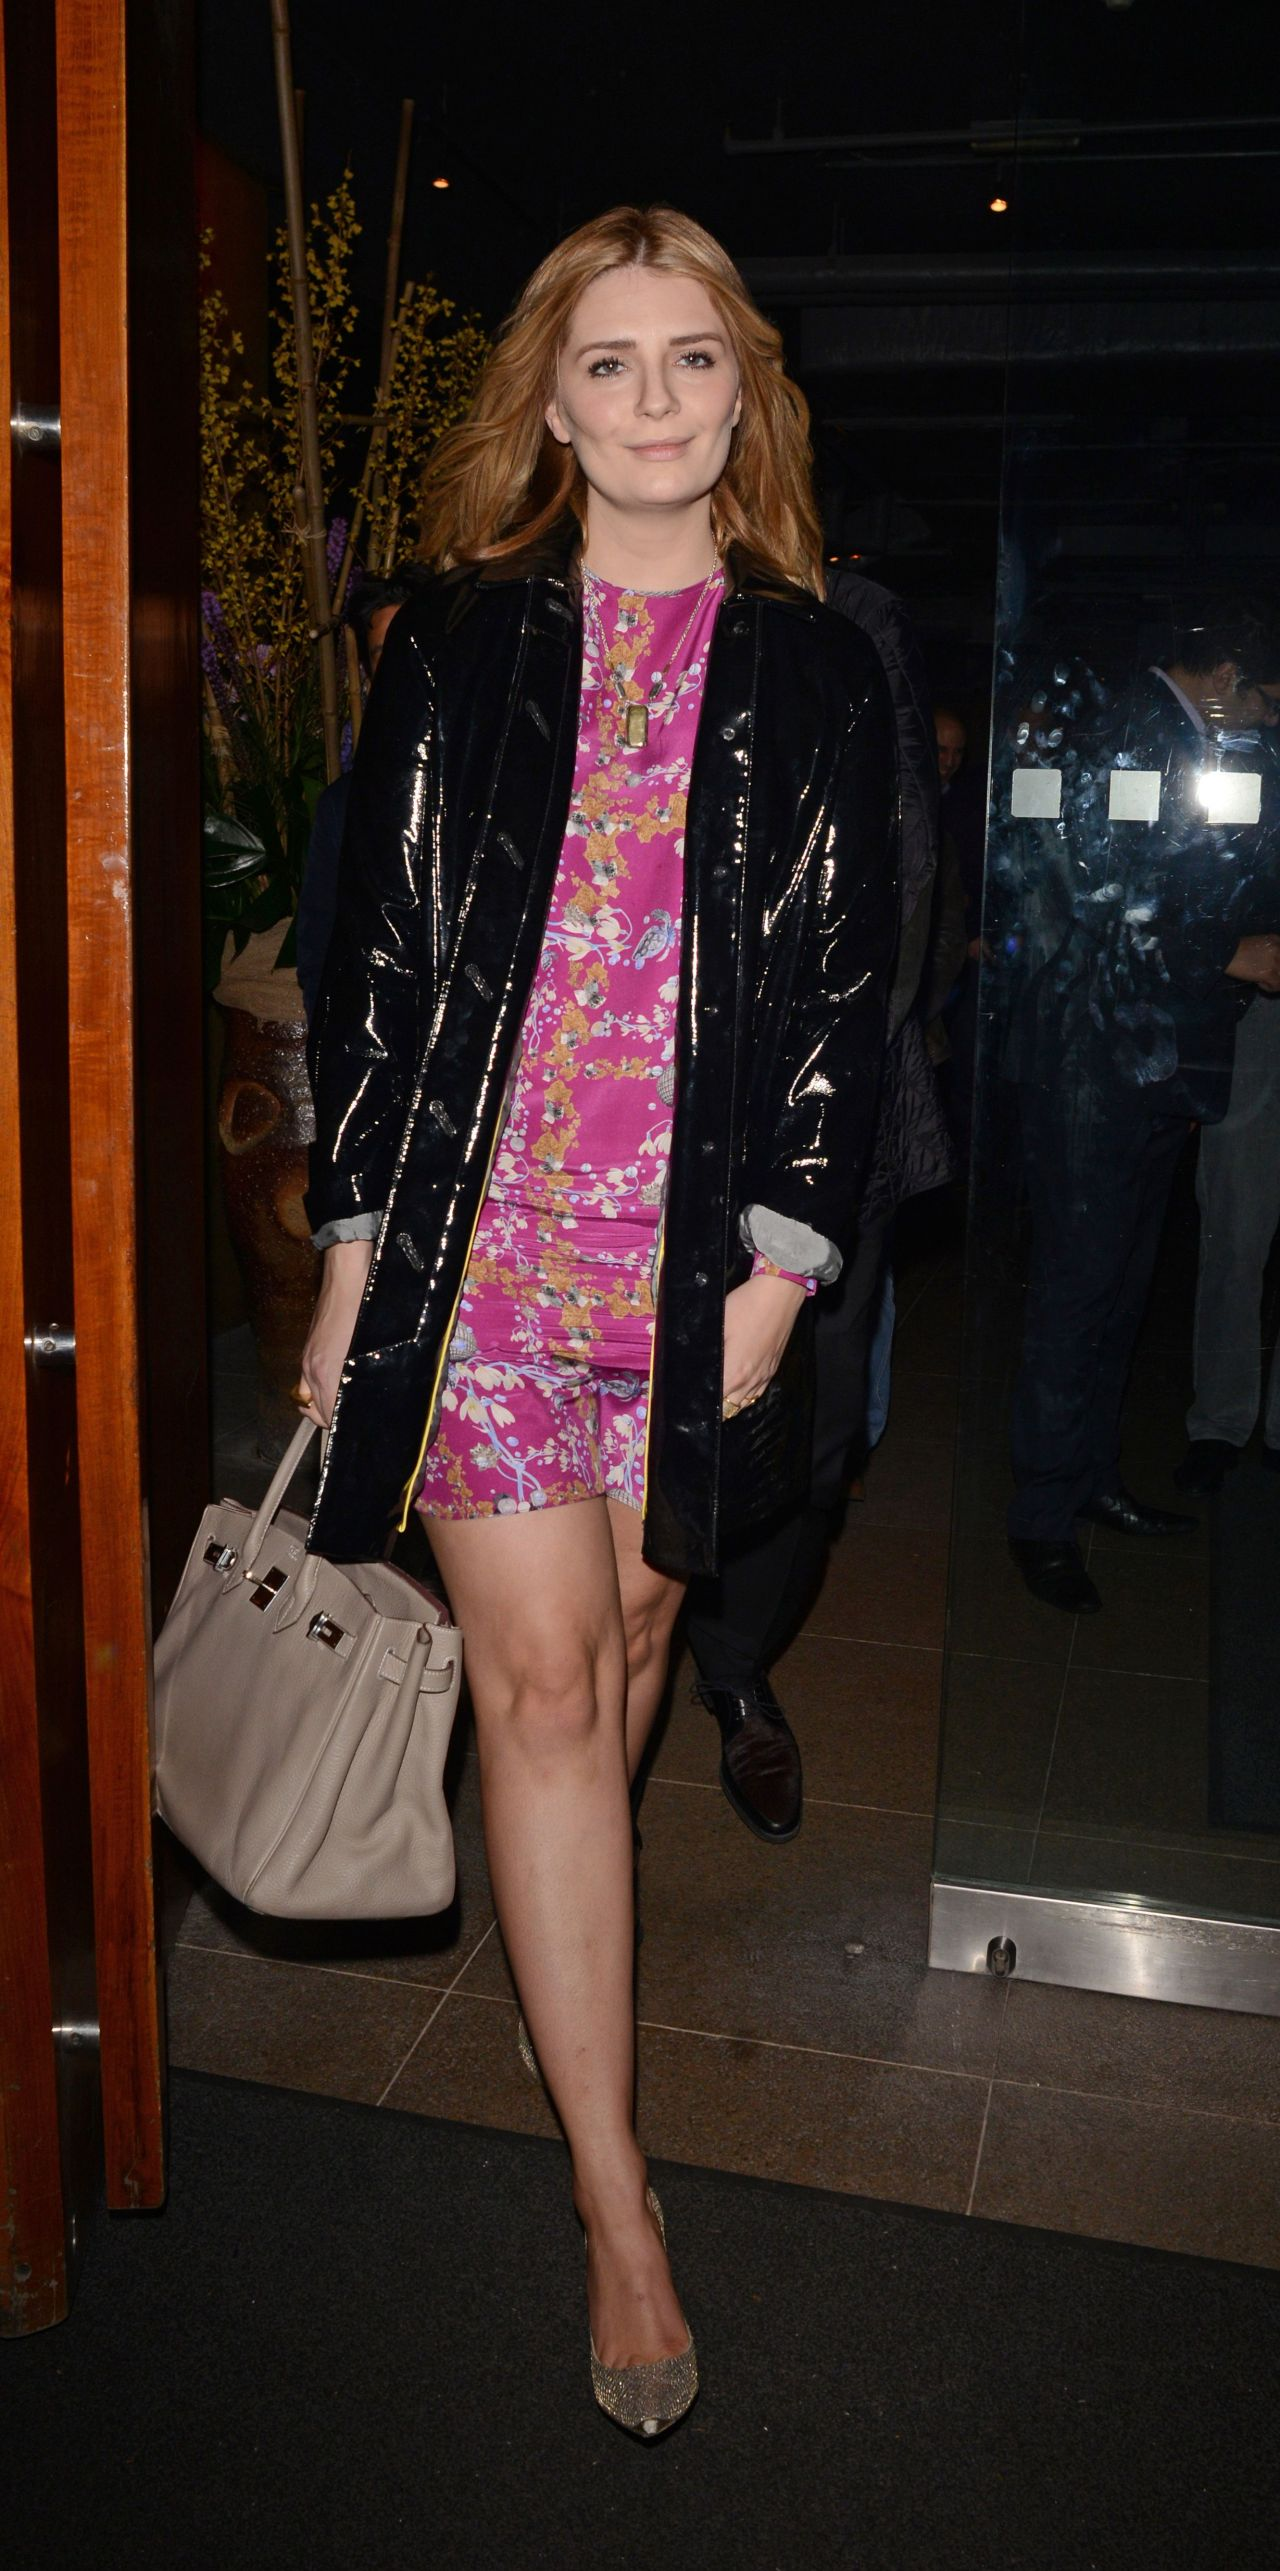 Mischa Barton Night Out Style - Zuma Restaurant in London, February 2014